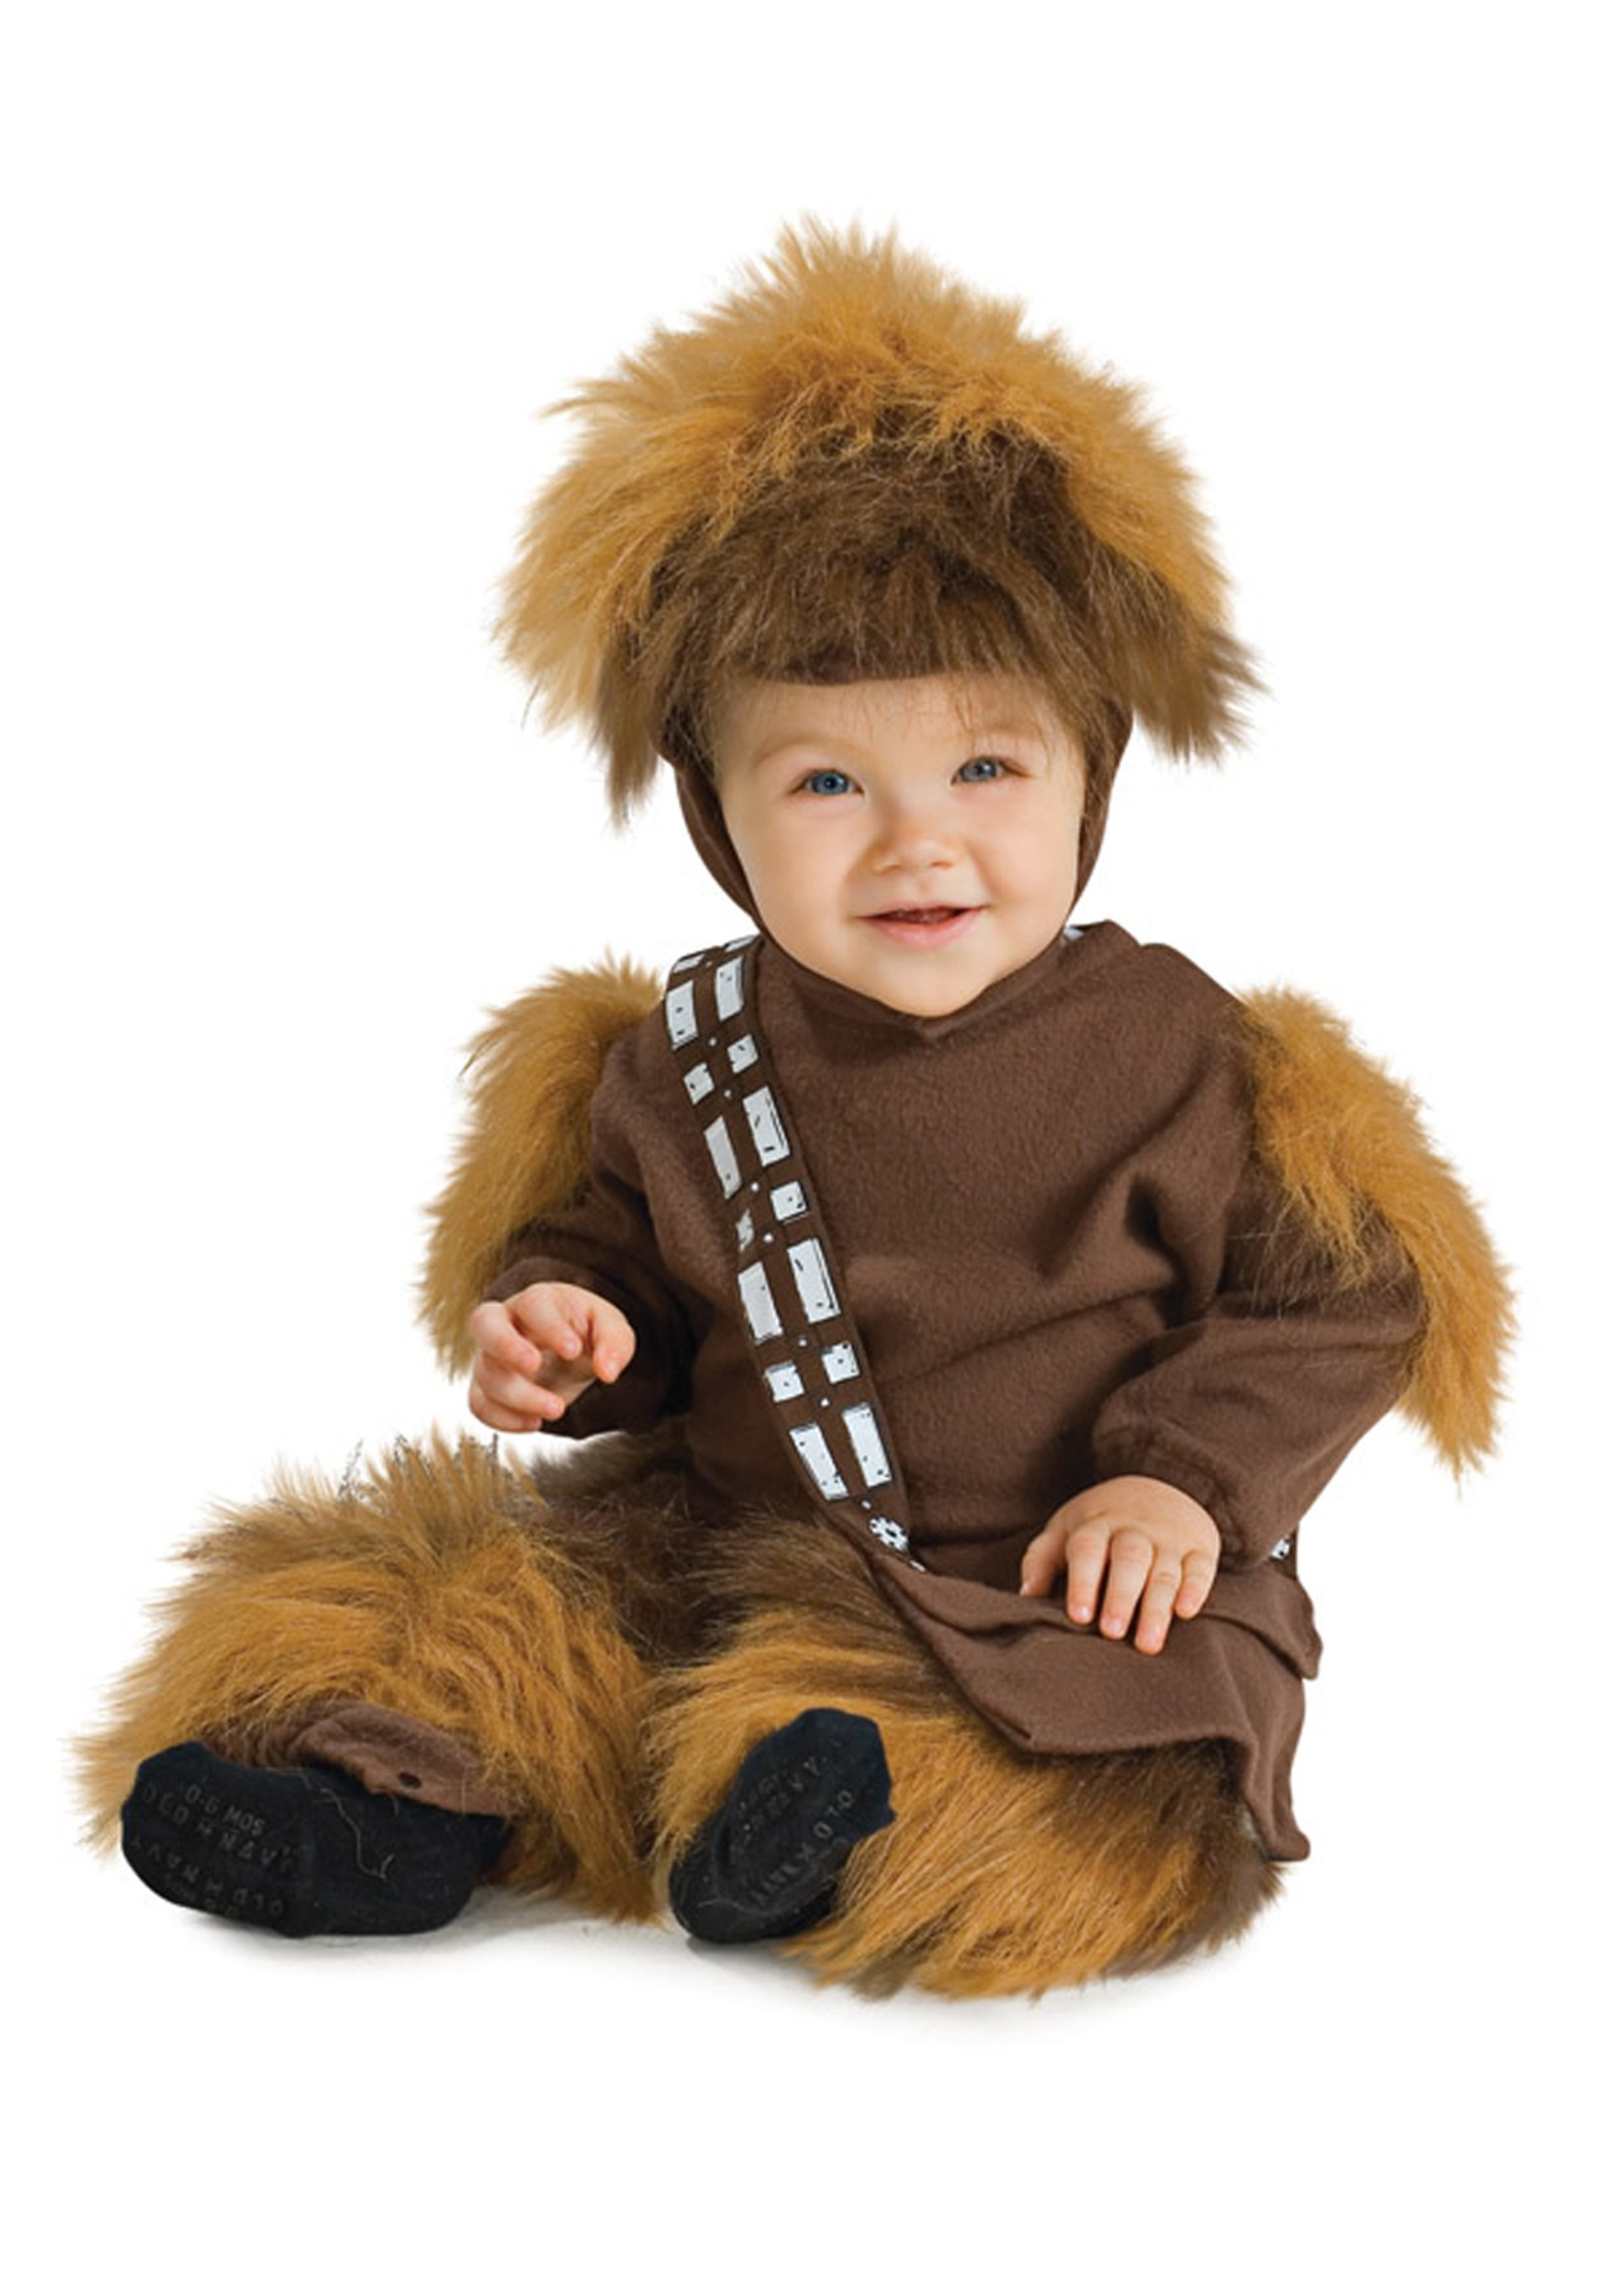 Star Wars Chewbacca Toddler Costume RU11681